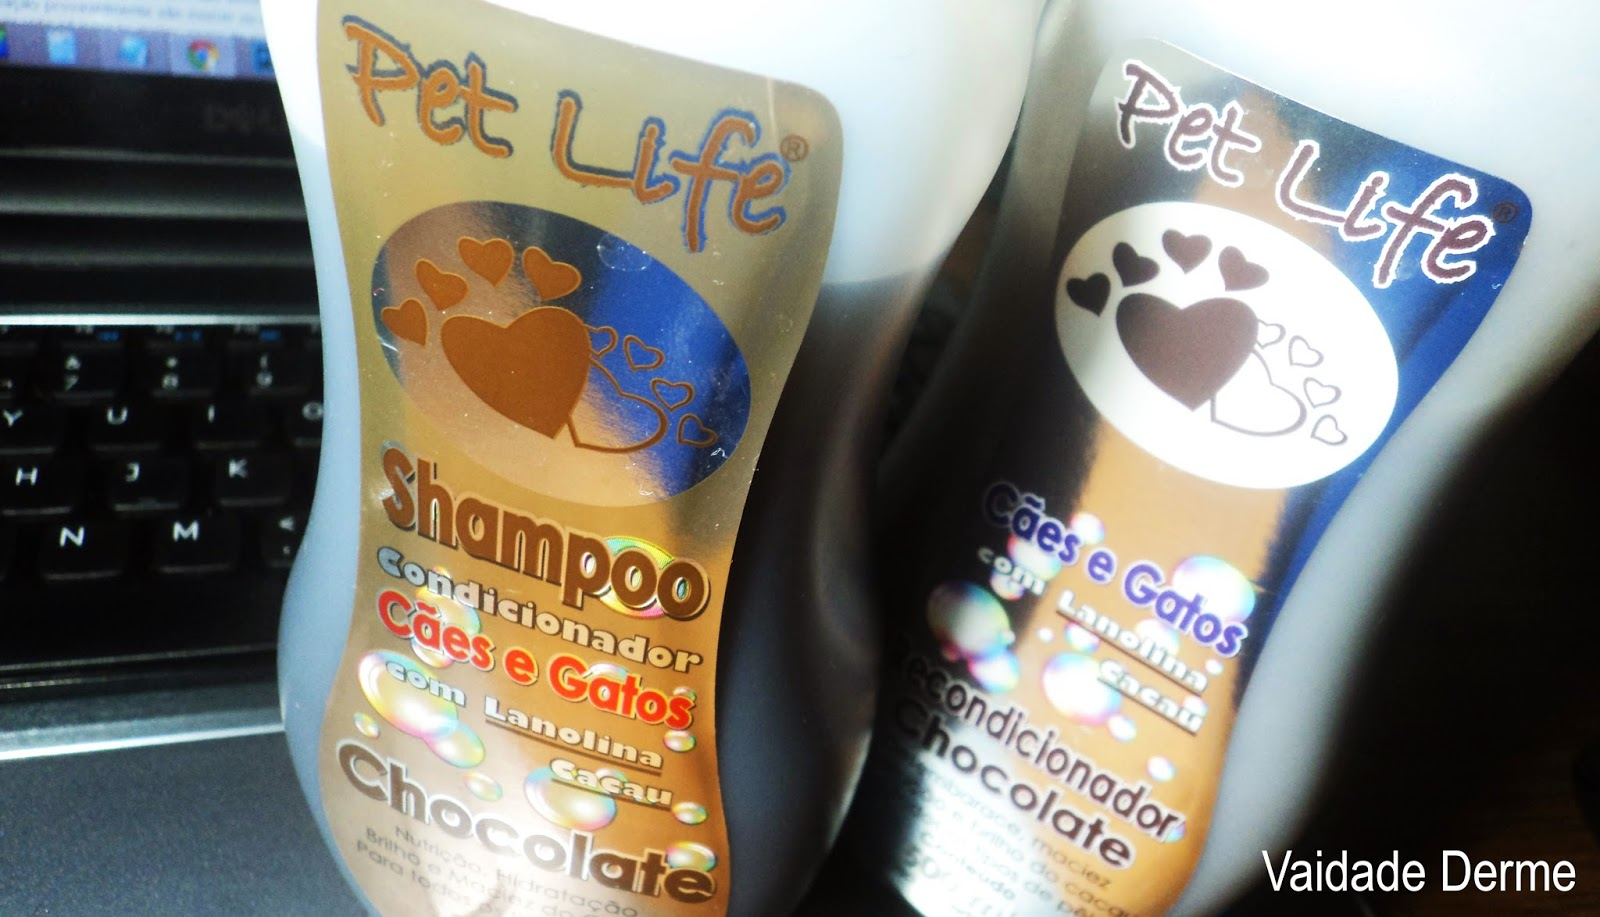 Shampoo e Recondicionador Chocolate Pet Life